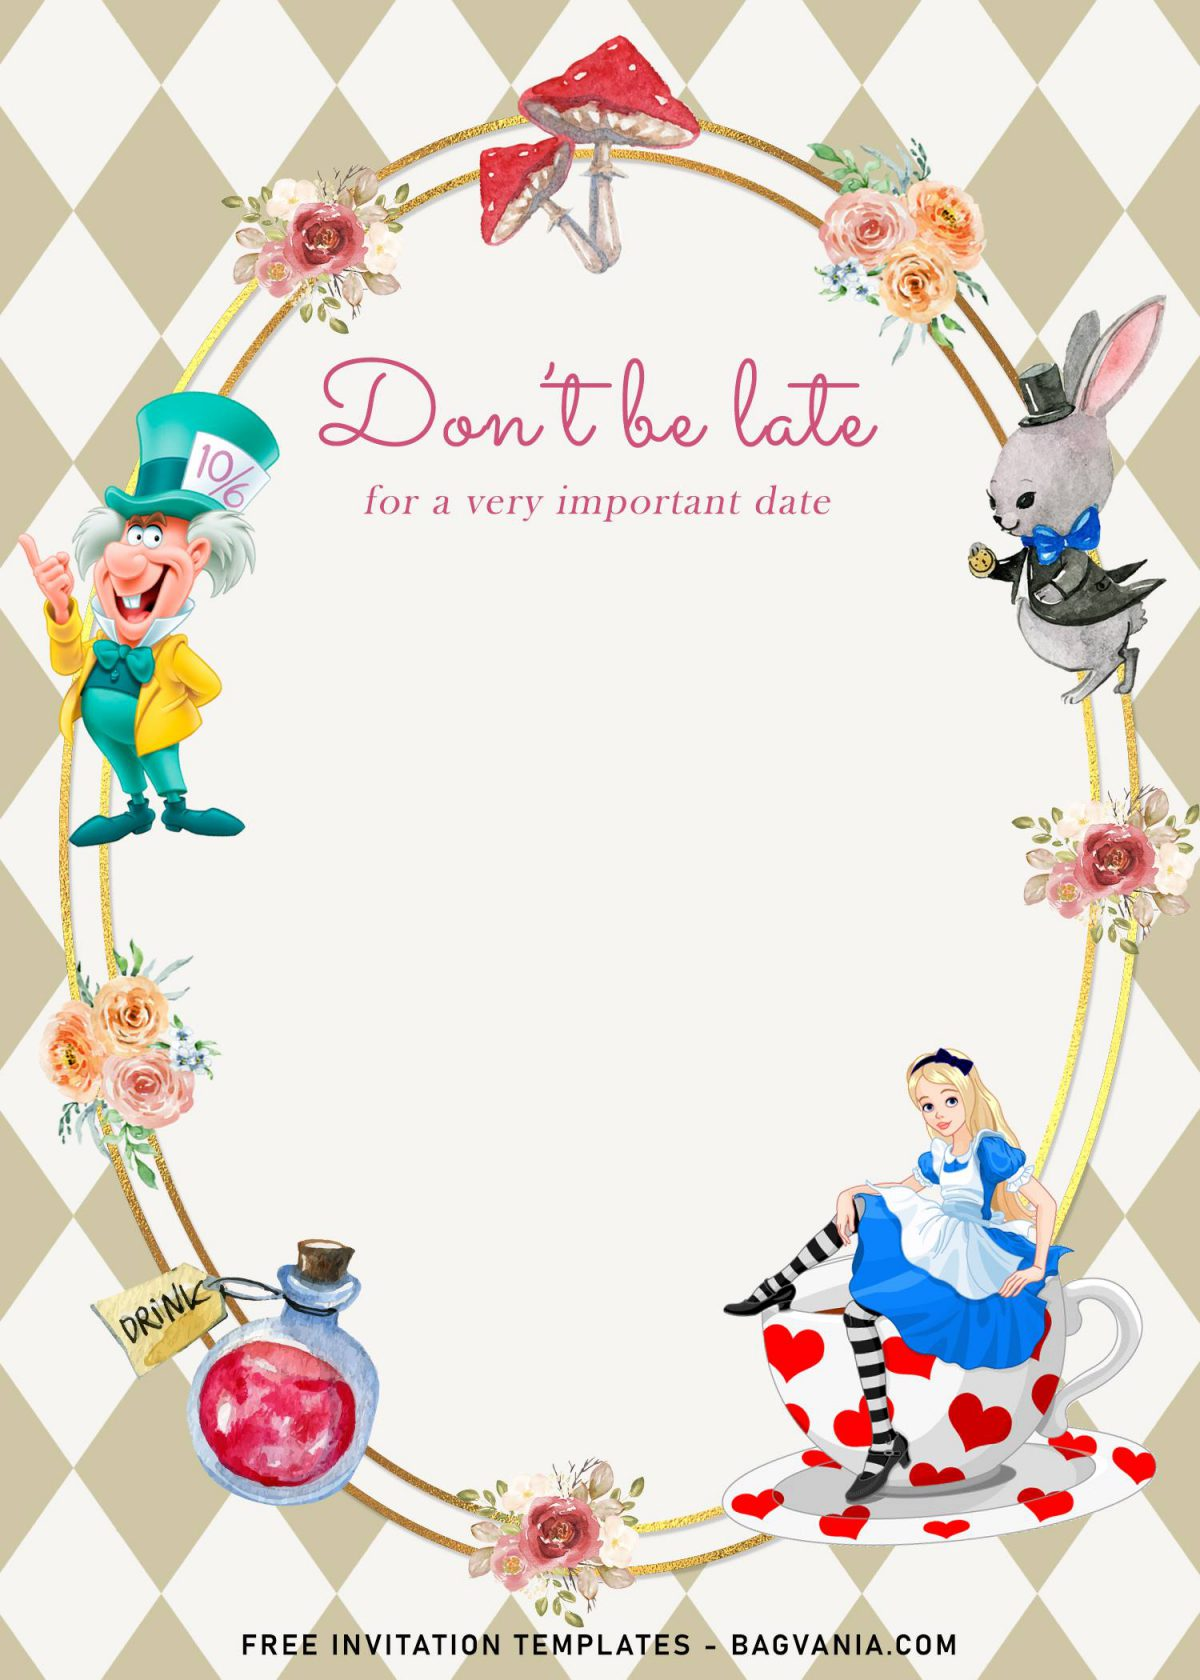 8+ Vintage Alice In Wonderland Birthday Invitation Templates and has diamond shape pattern